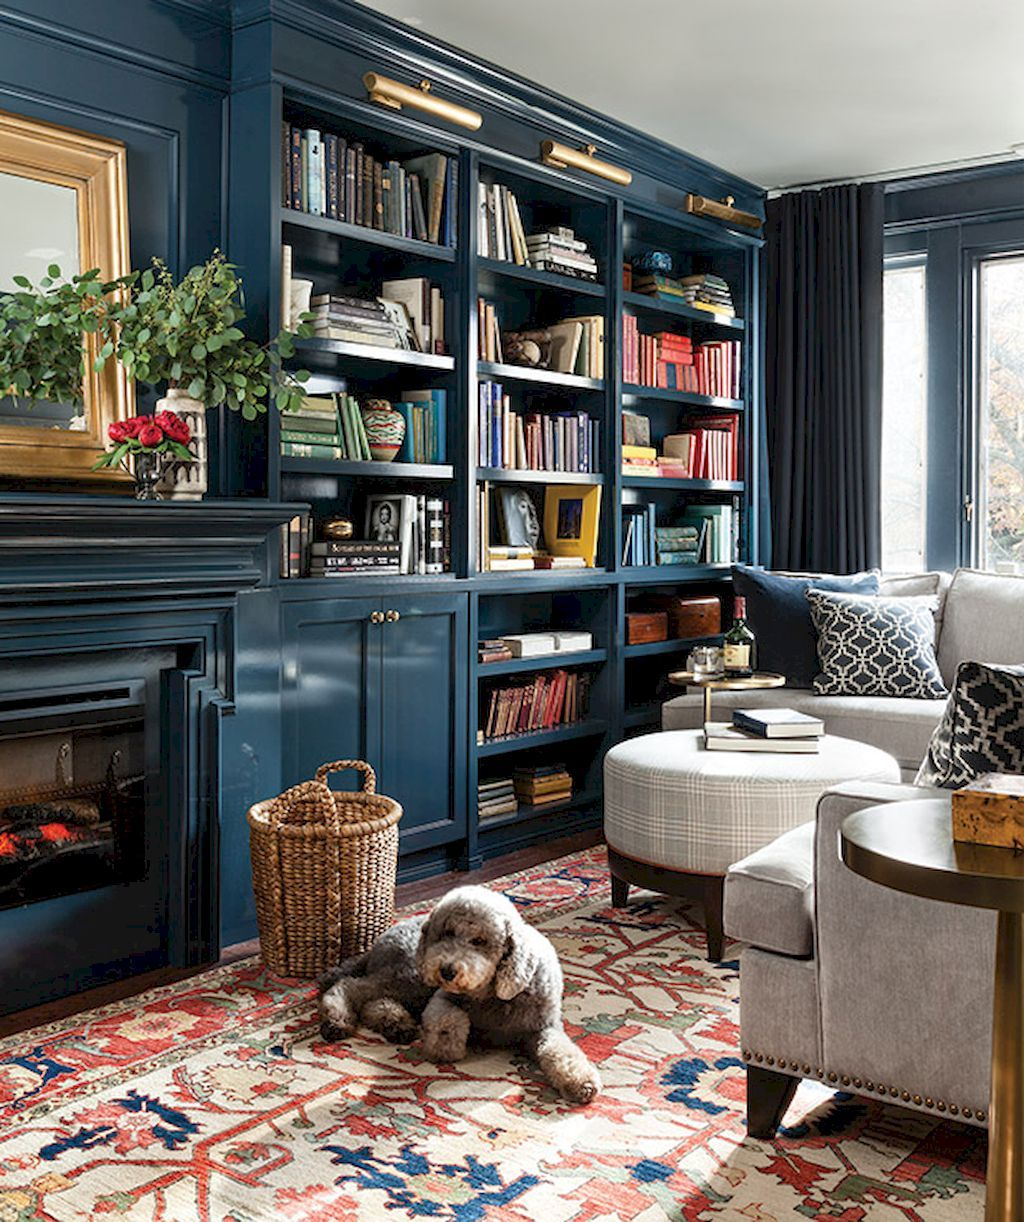 3 Take Away Tips: Make Home Your Coziest Place to Be